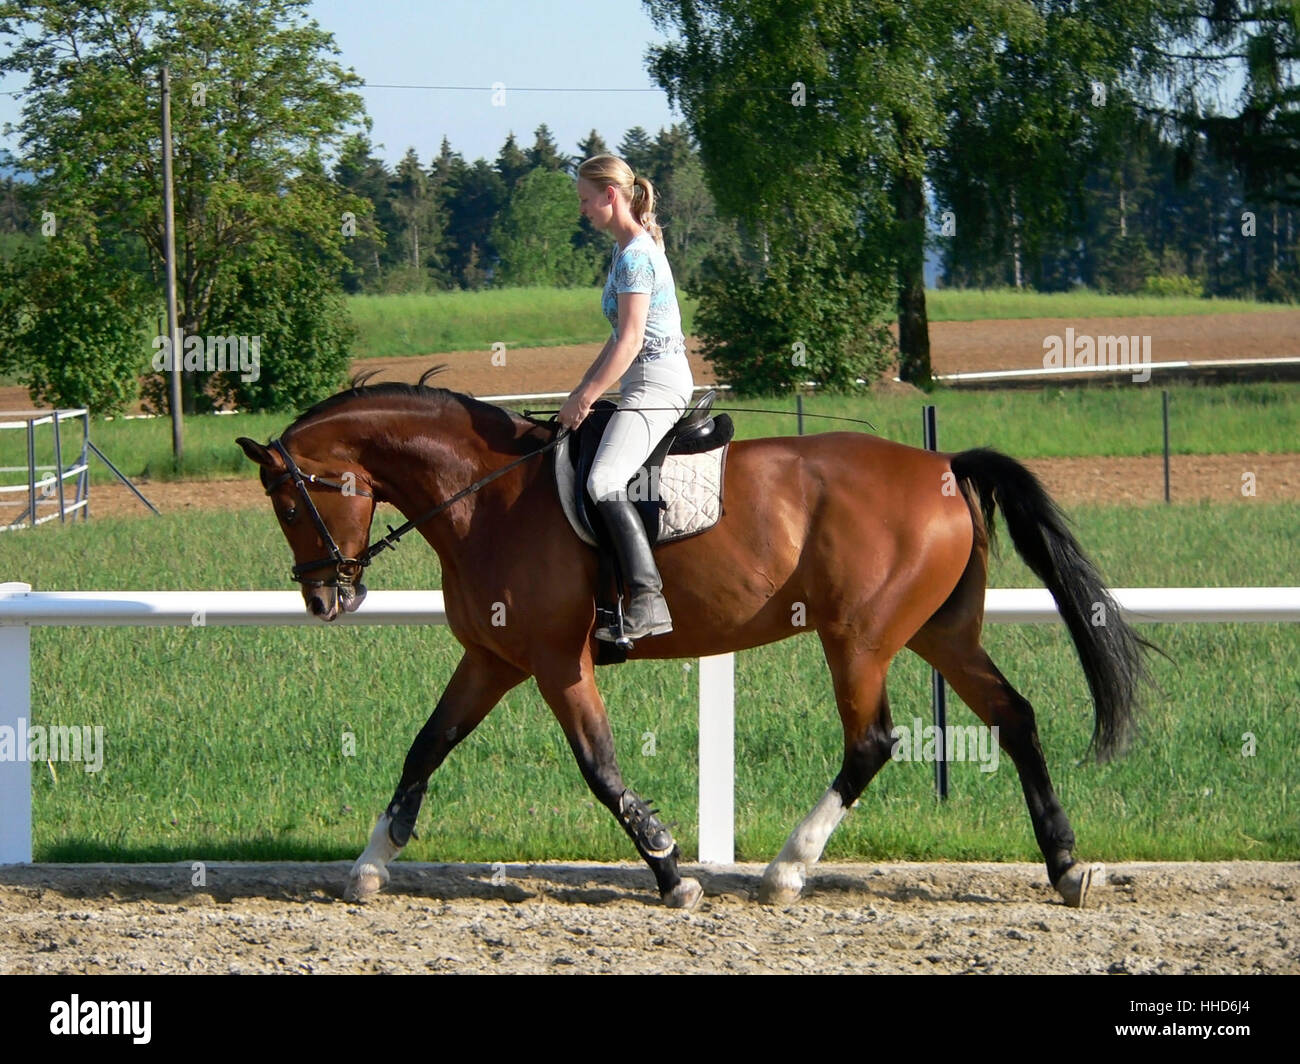 horse riding woman sideways in a parcours at summer time - Stock Image